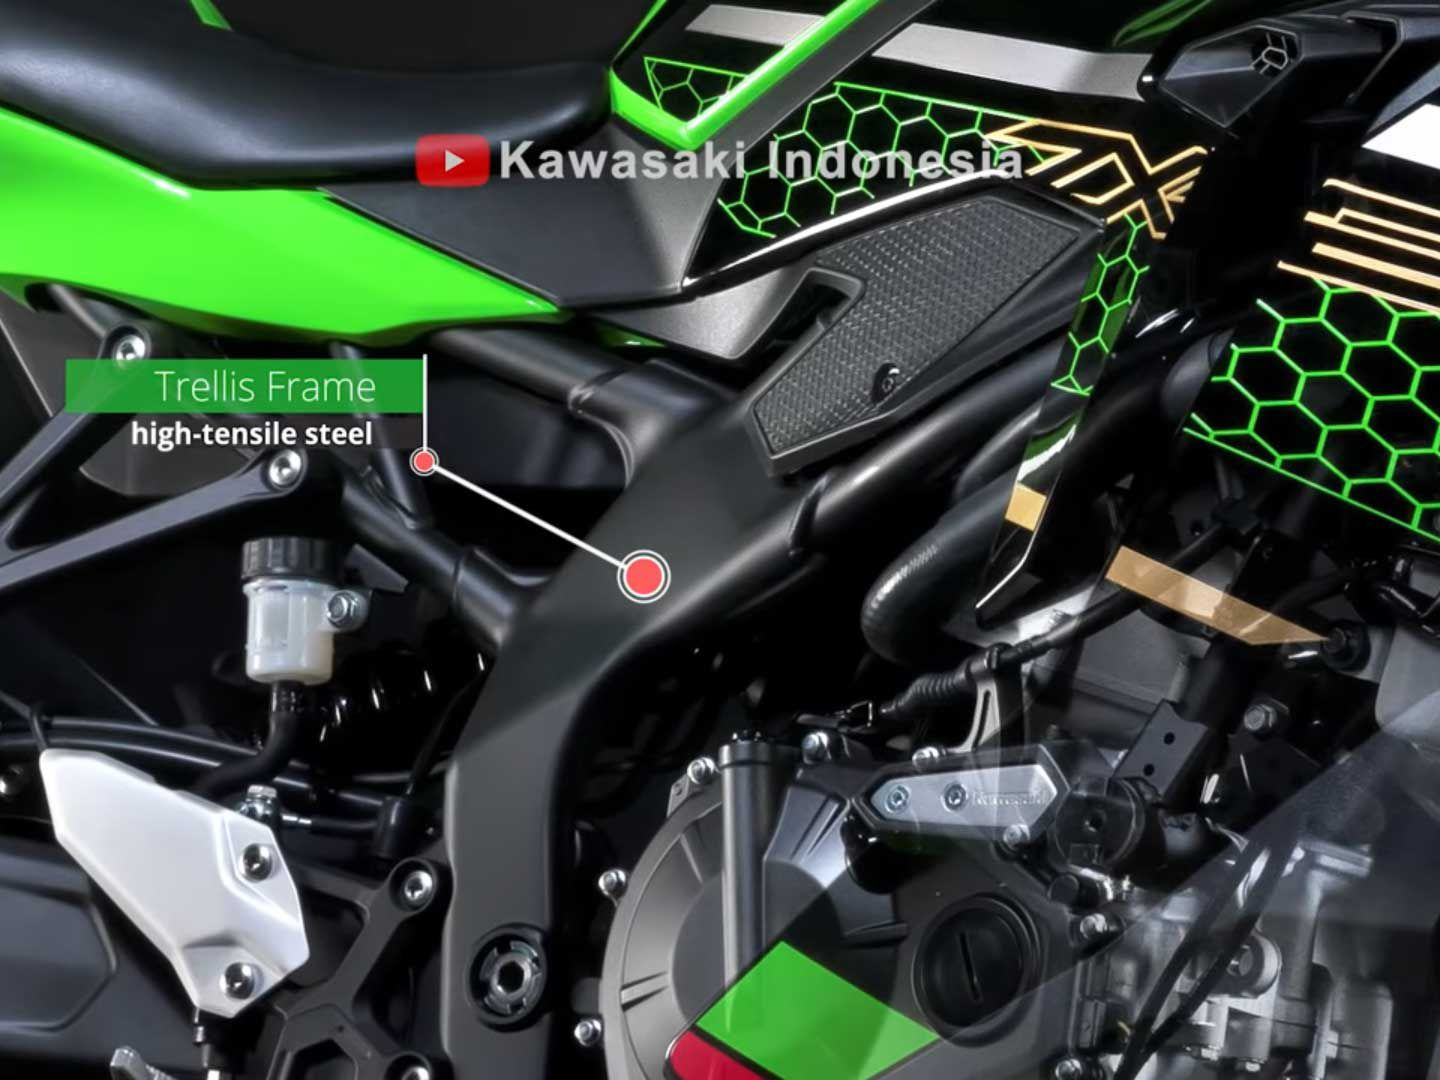 High-tensile steel frame and other up-spec components make the ZX-25R an enticing option.